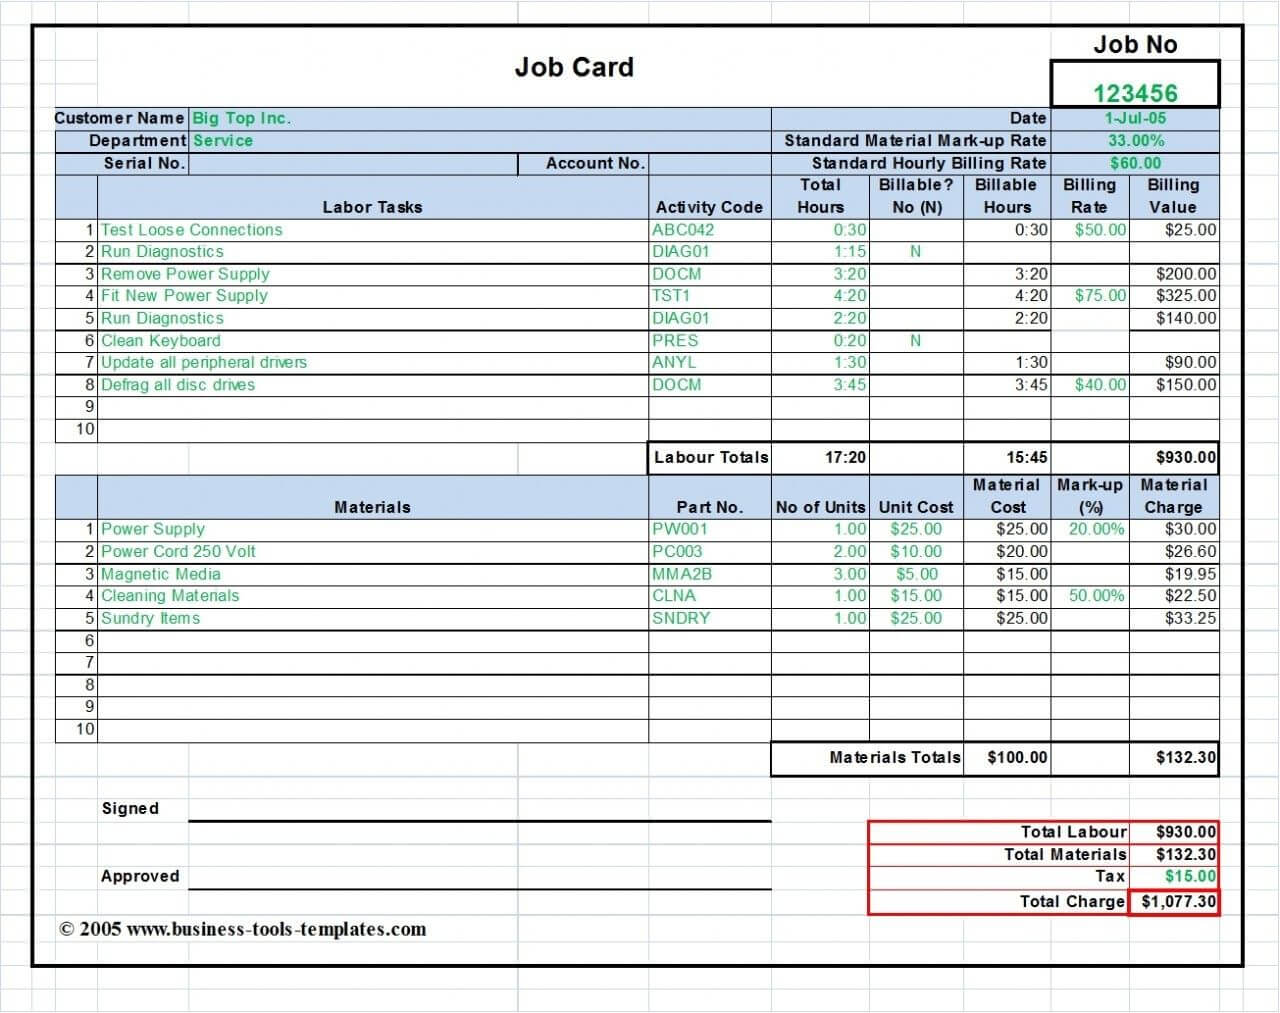 Workshop Job Card Template Excel, Labor & Material Cost pertaining to Rate Card Template Word